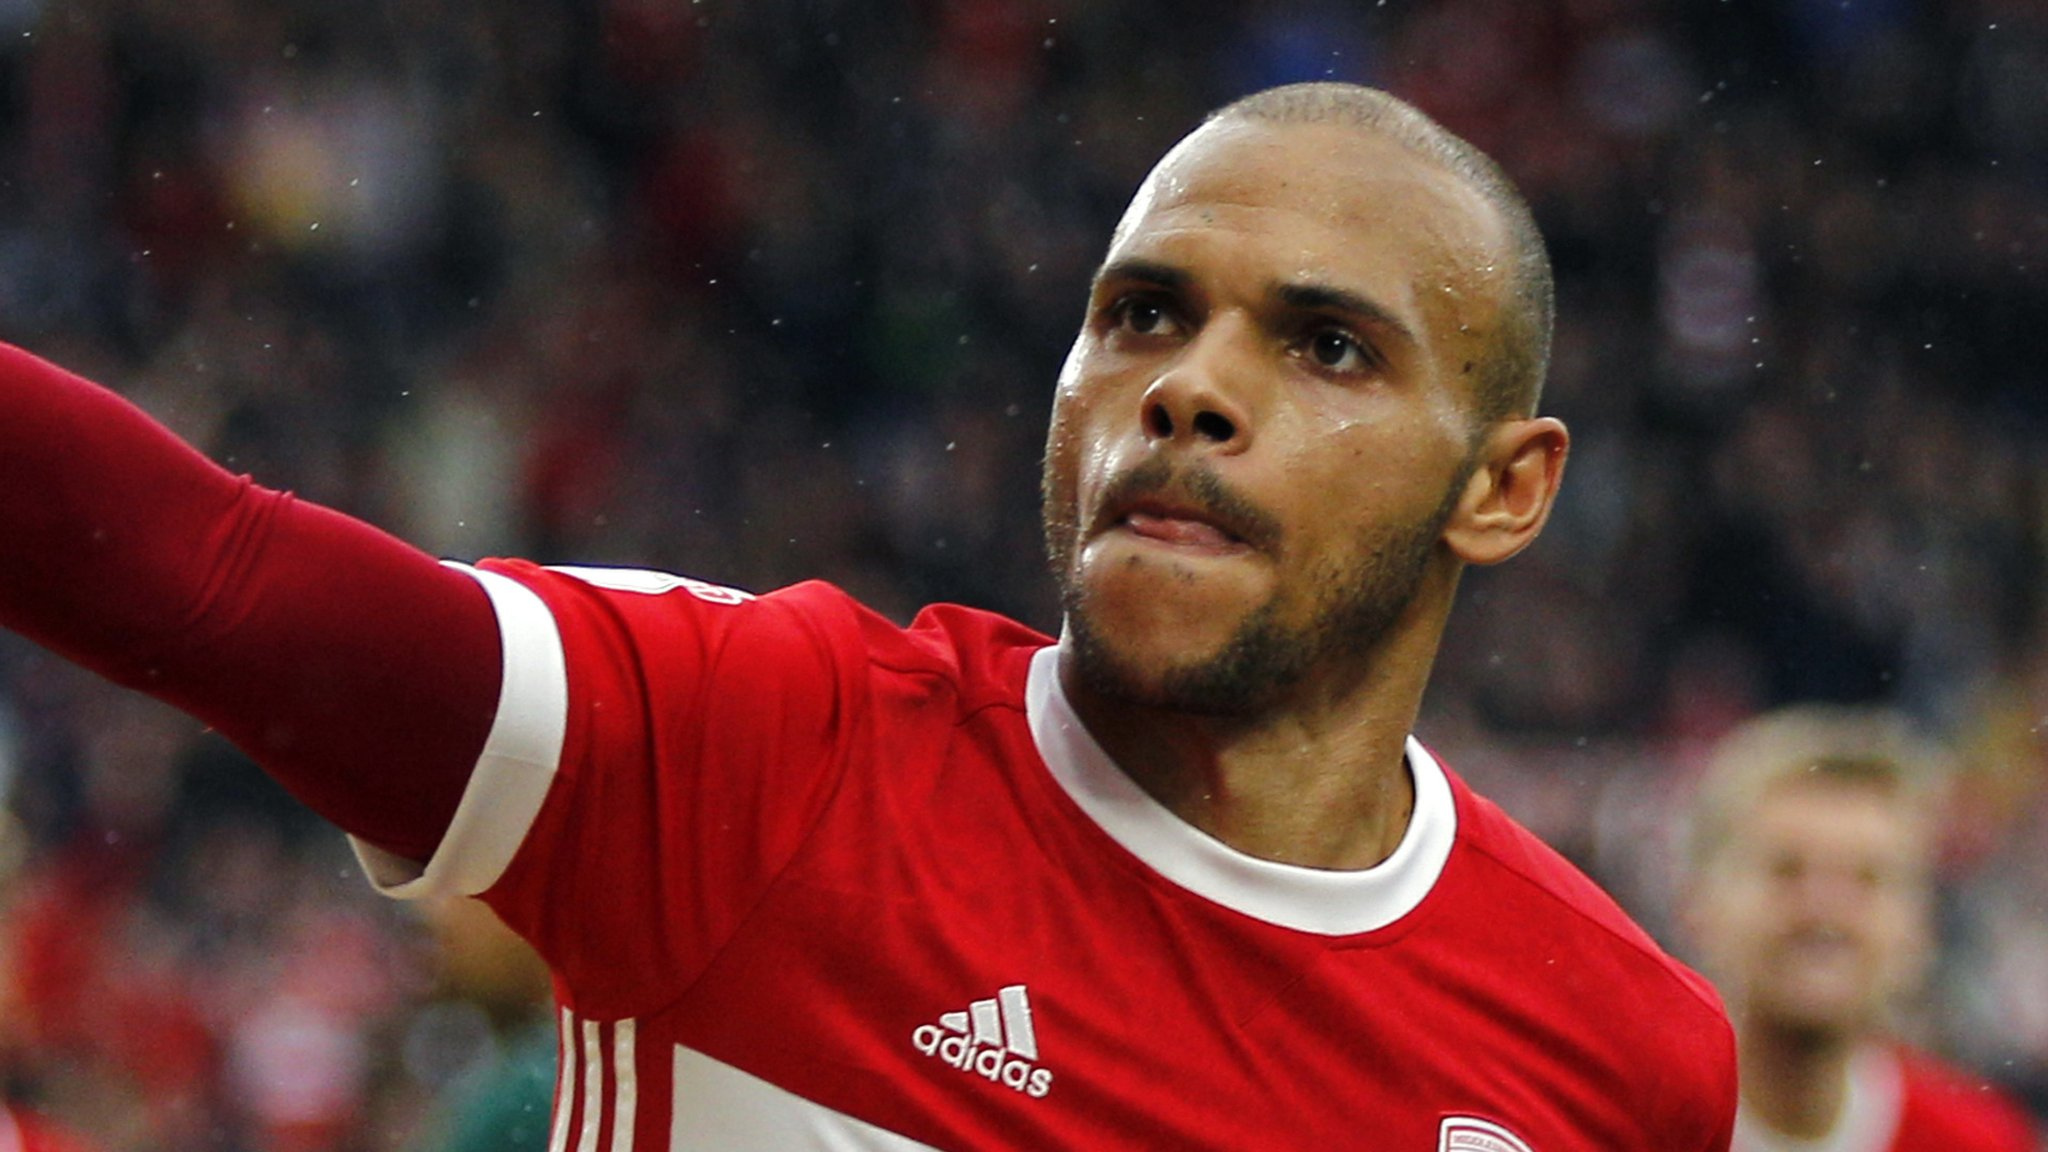 Middlesbrough v Burton Albion: Braithwaite to play in Carabao Cup quarter-final